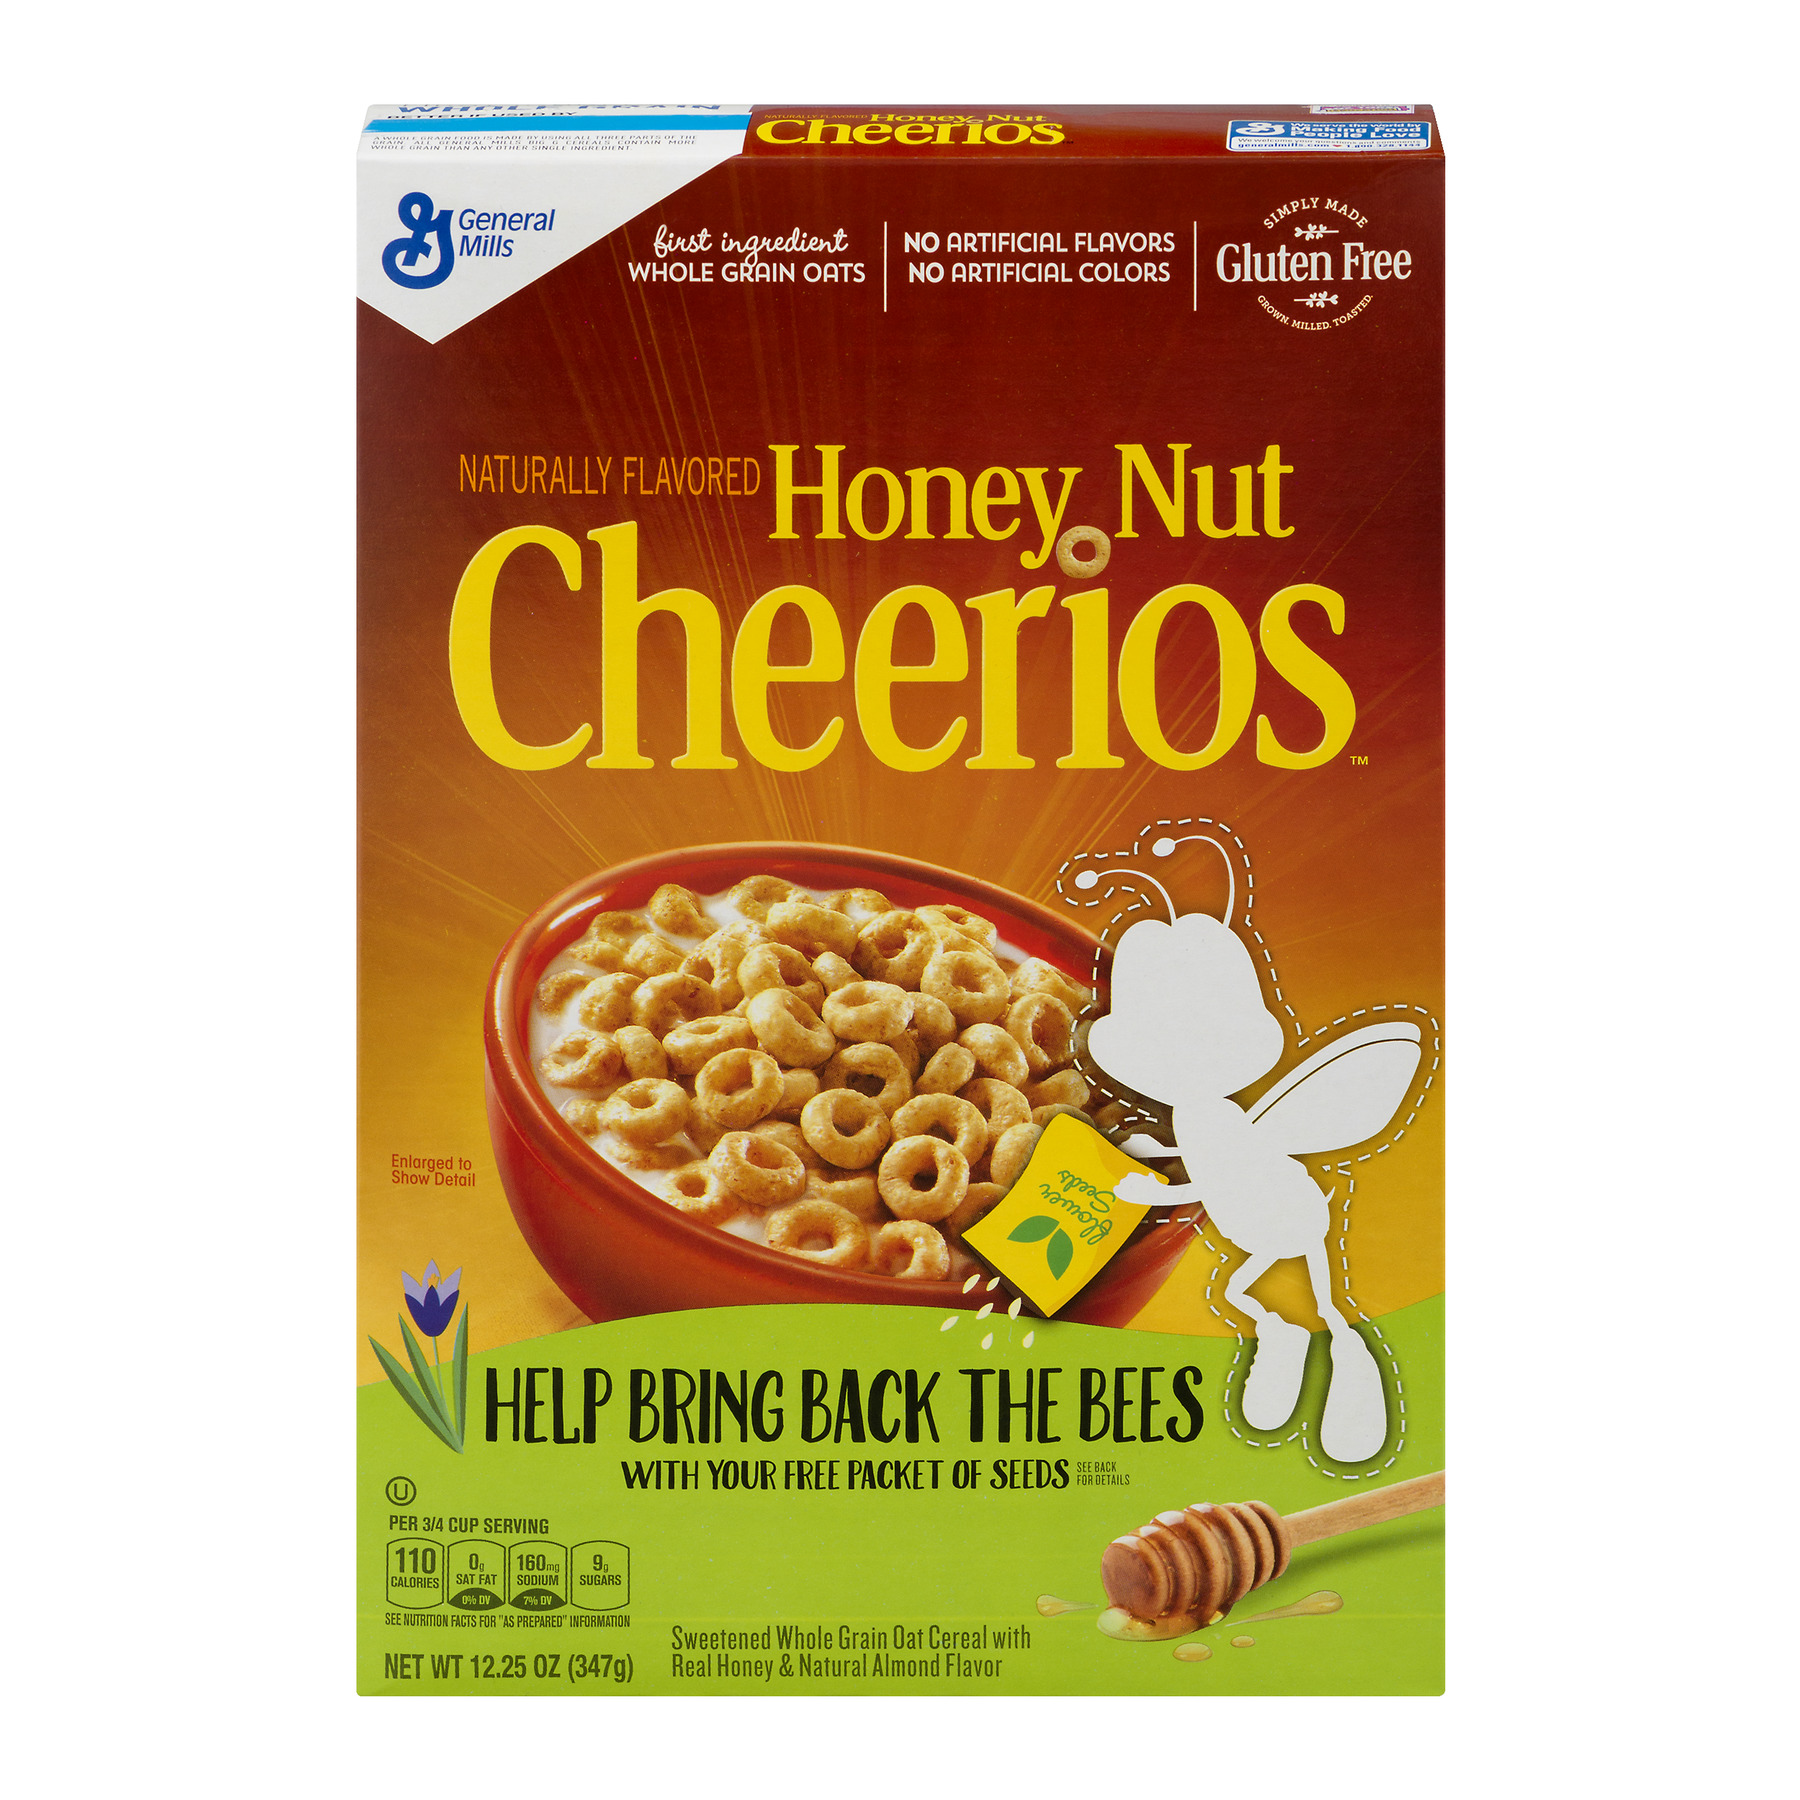 Honey Nut Cheerios™ Gluten Free Cereal 12.25 oz Box